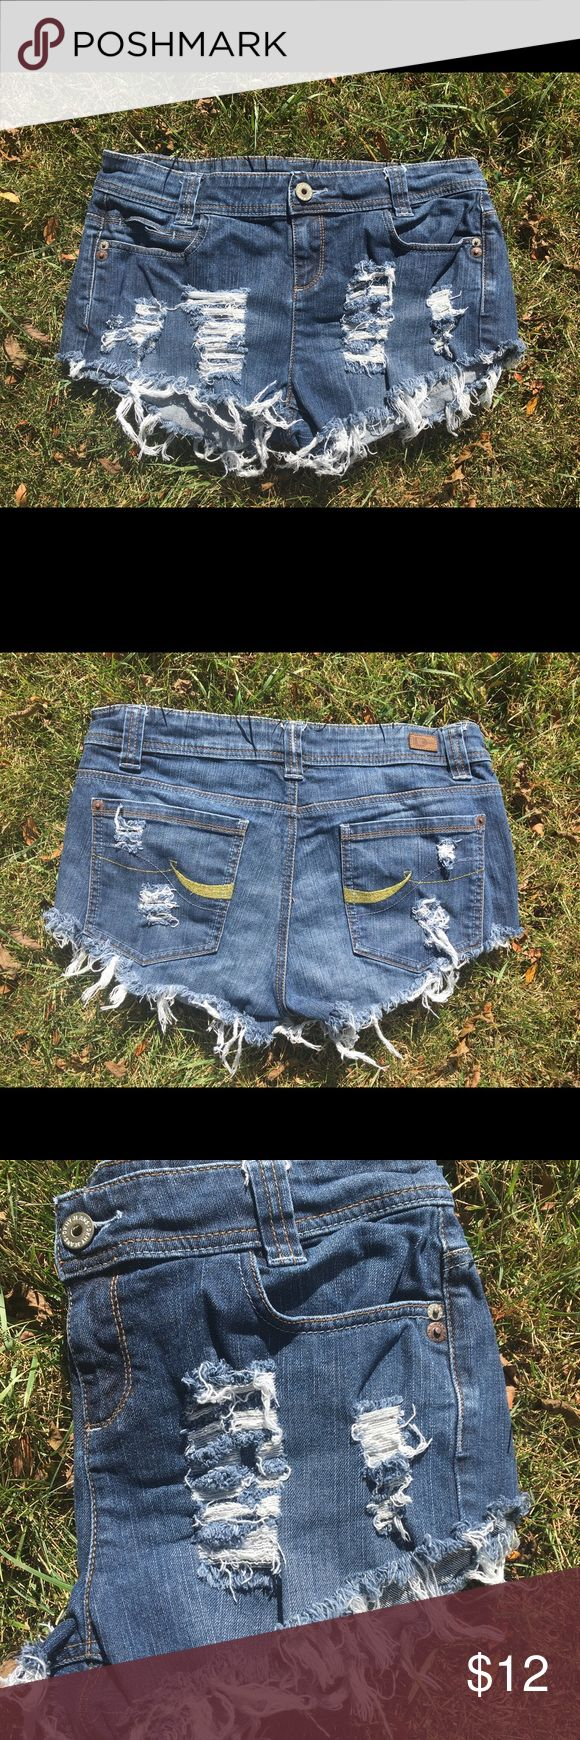 DKNY women shorts size 12 DKNY 12 women ripped shorts!!! Keep up with the style and grab these jeans to go to the beach, ocean, pool, or out with the girlfriends!! These are used, ripped and cut by me if you want more ripping just contact me, customers request is my priority!!! DKNYC Jeans